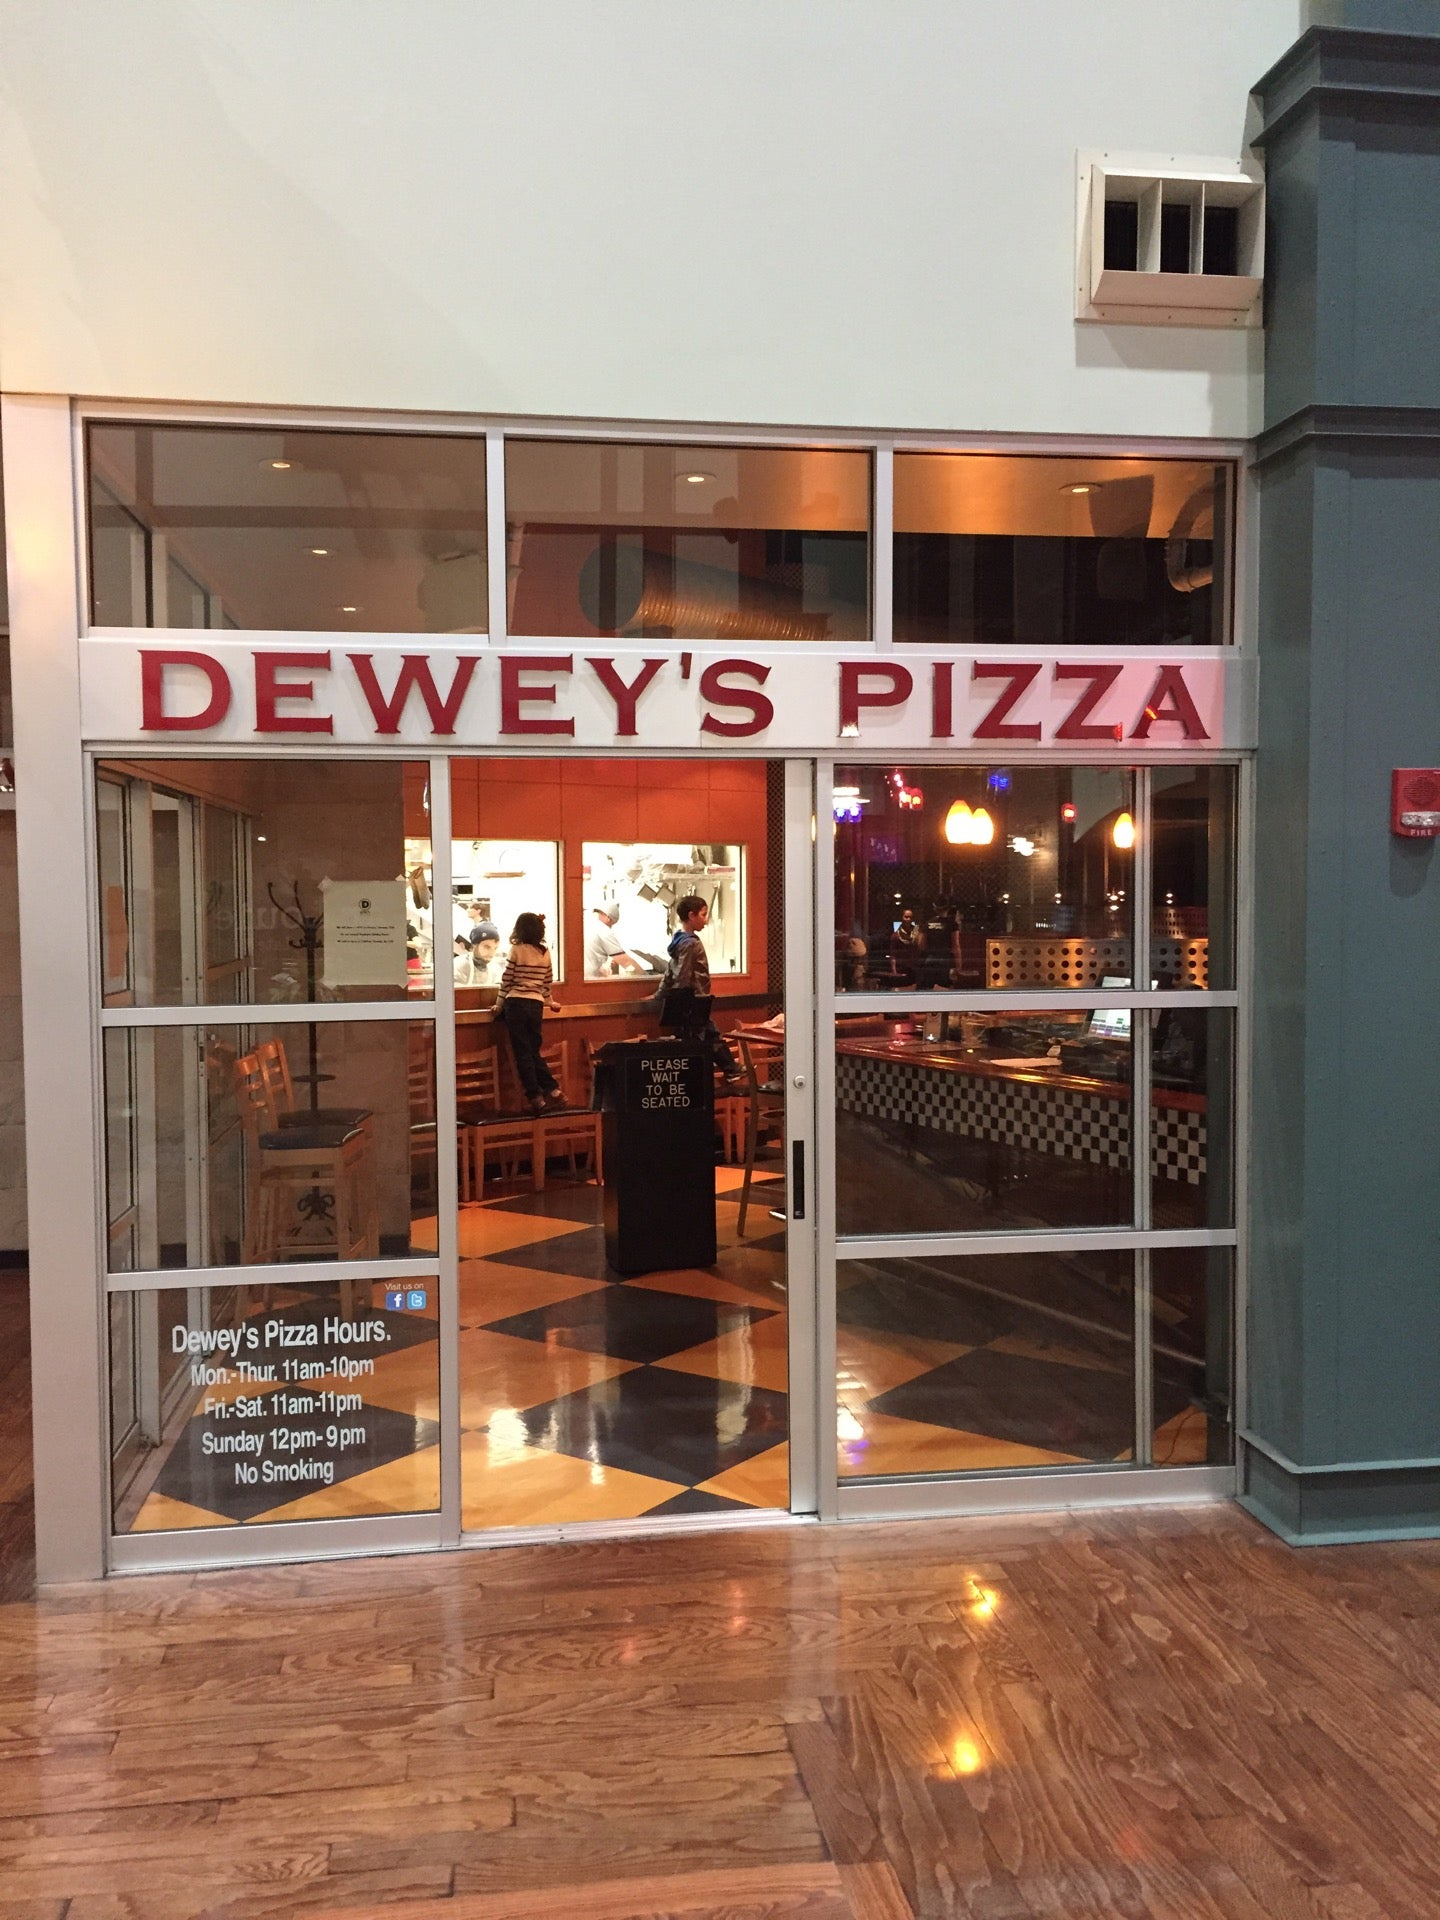 Dewey's Pizza,pizza,zagat-rated